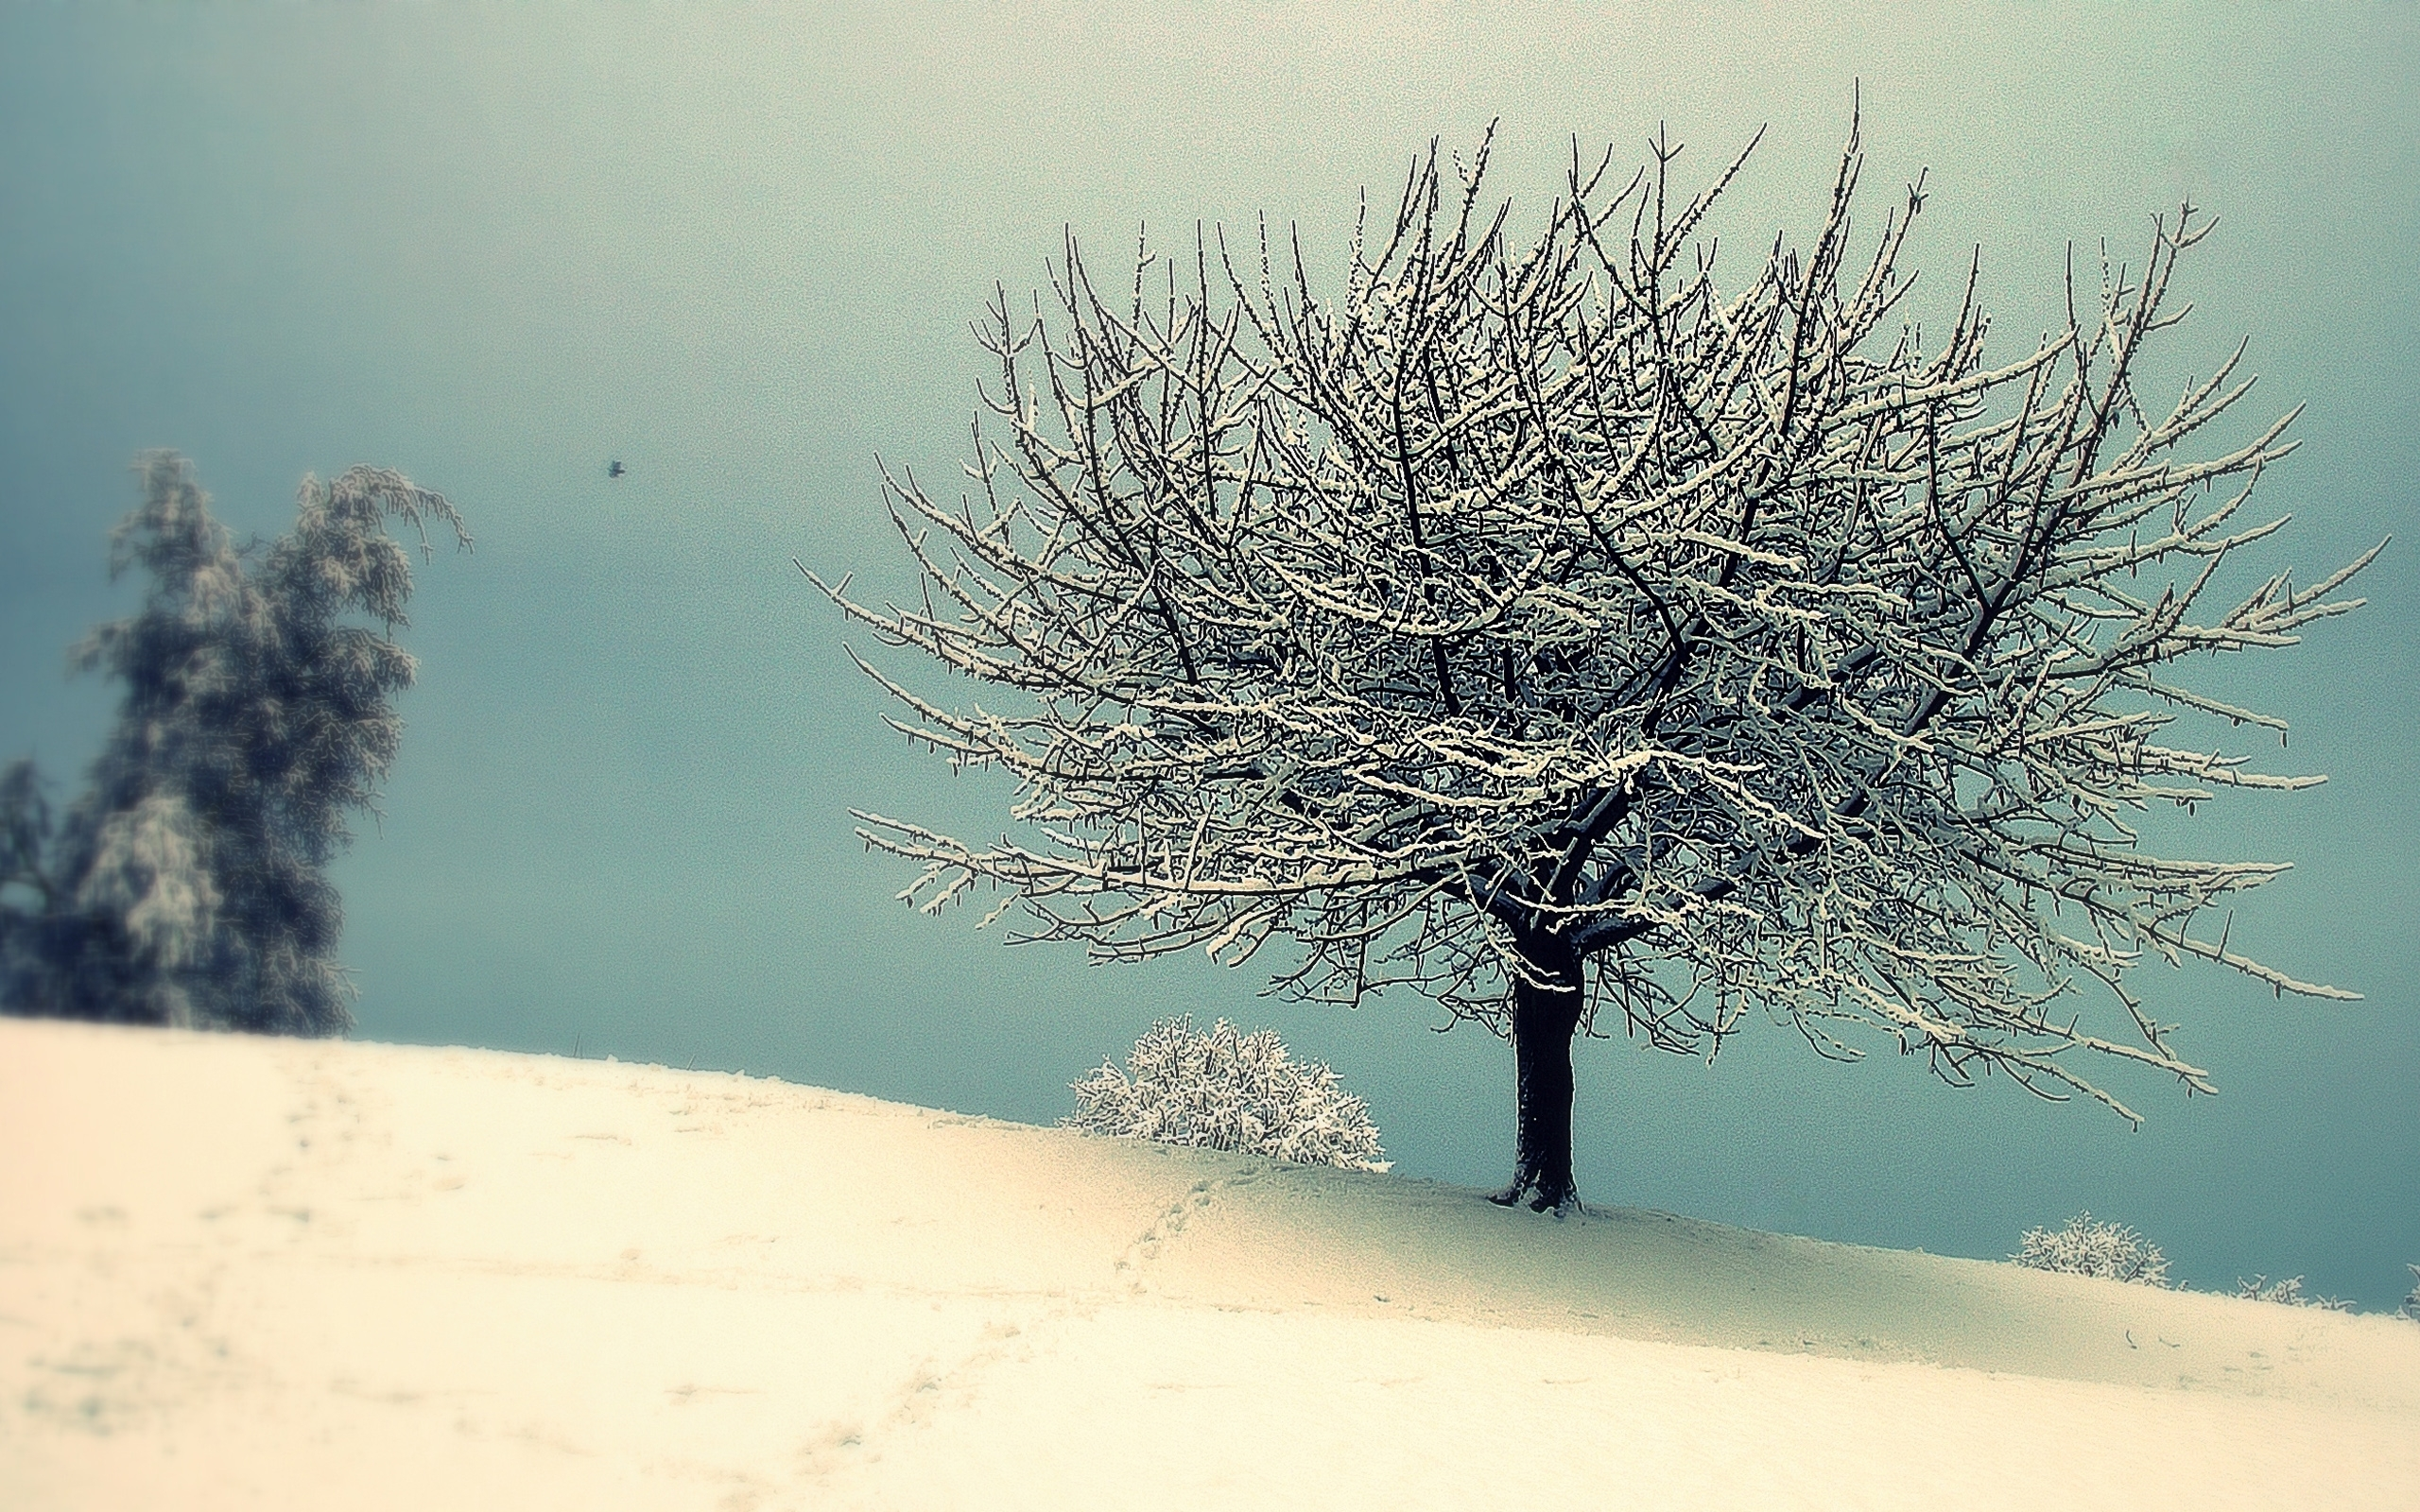 42614 download wallpaper Landscape, Winter screensavers and pictures for free